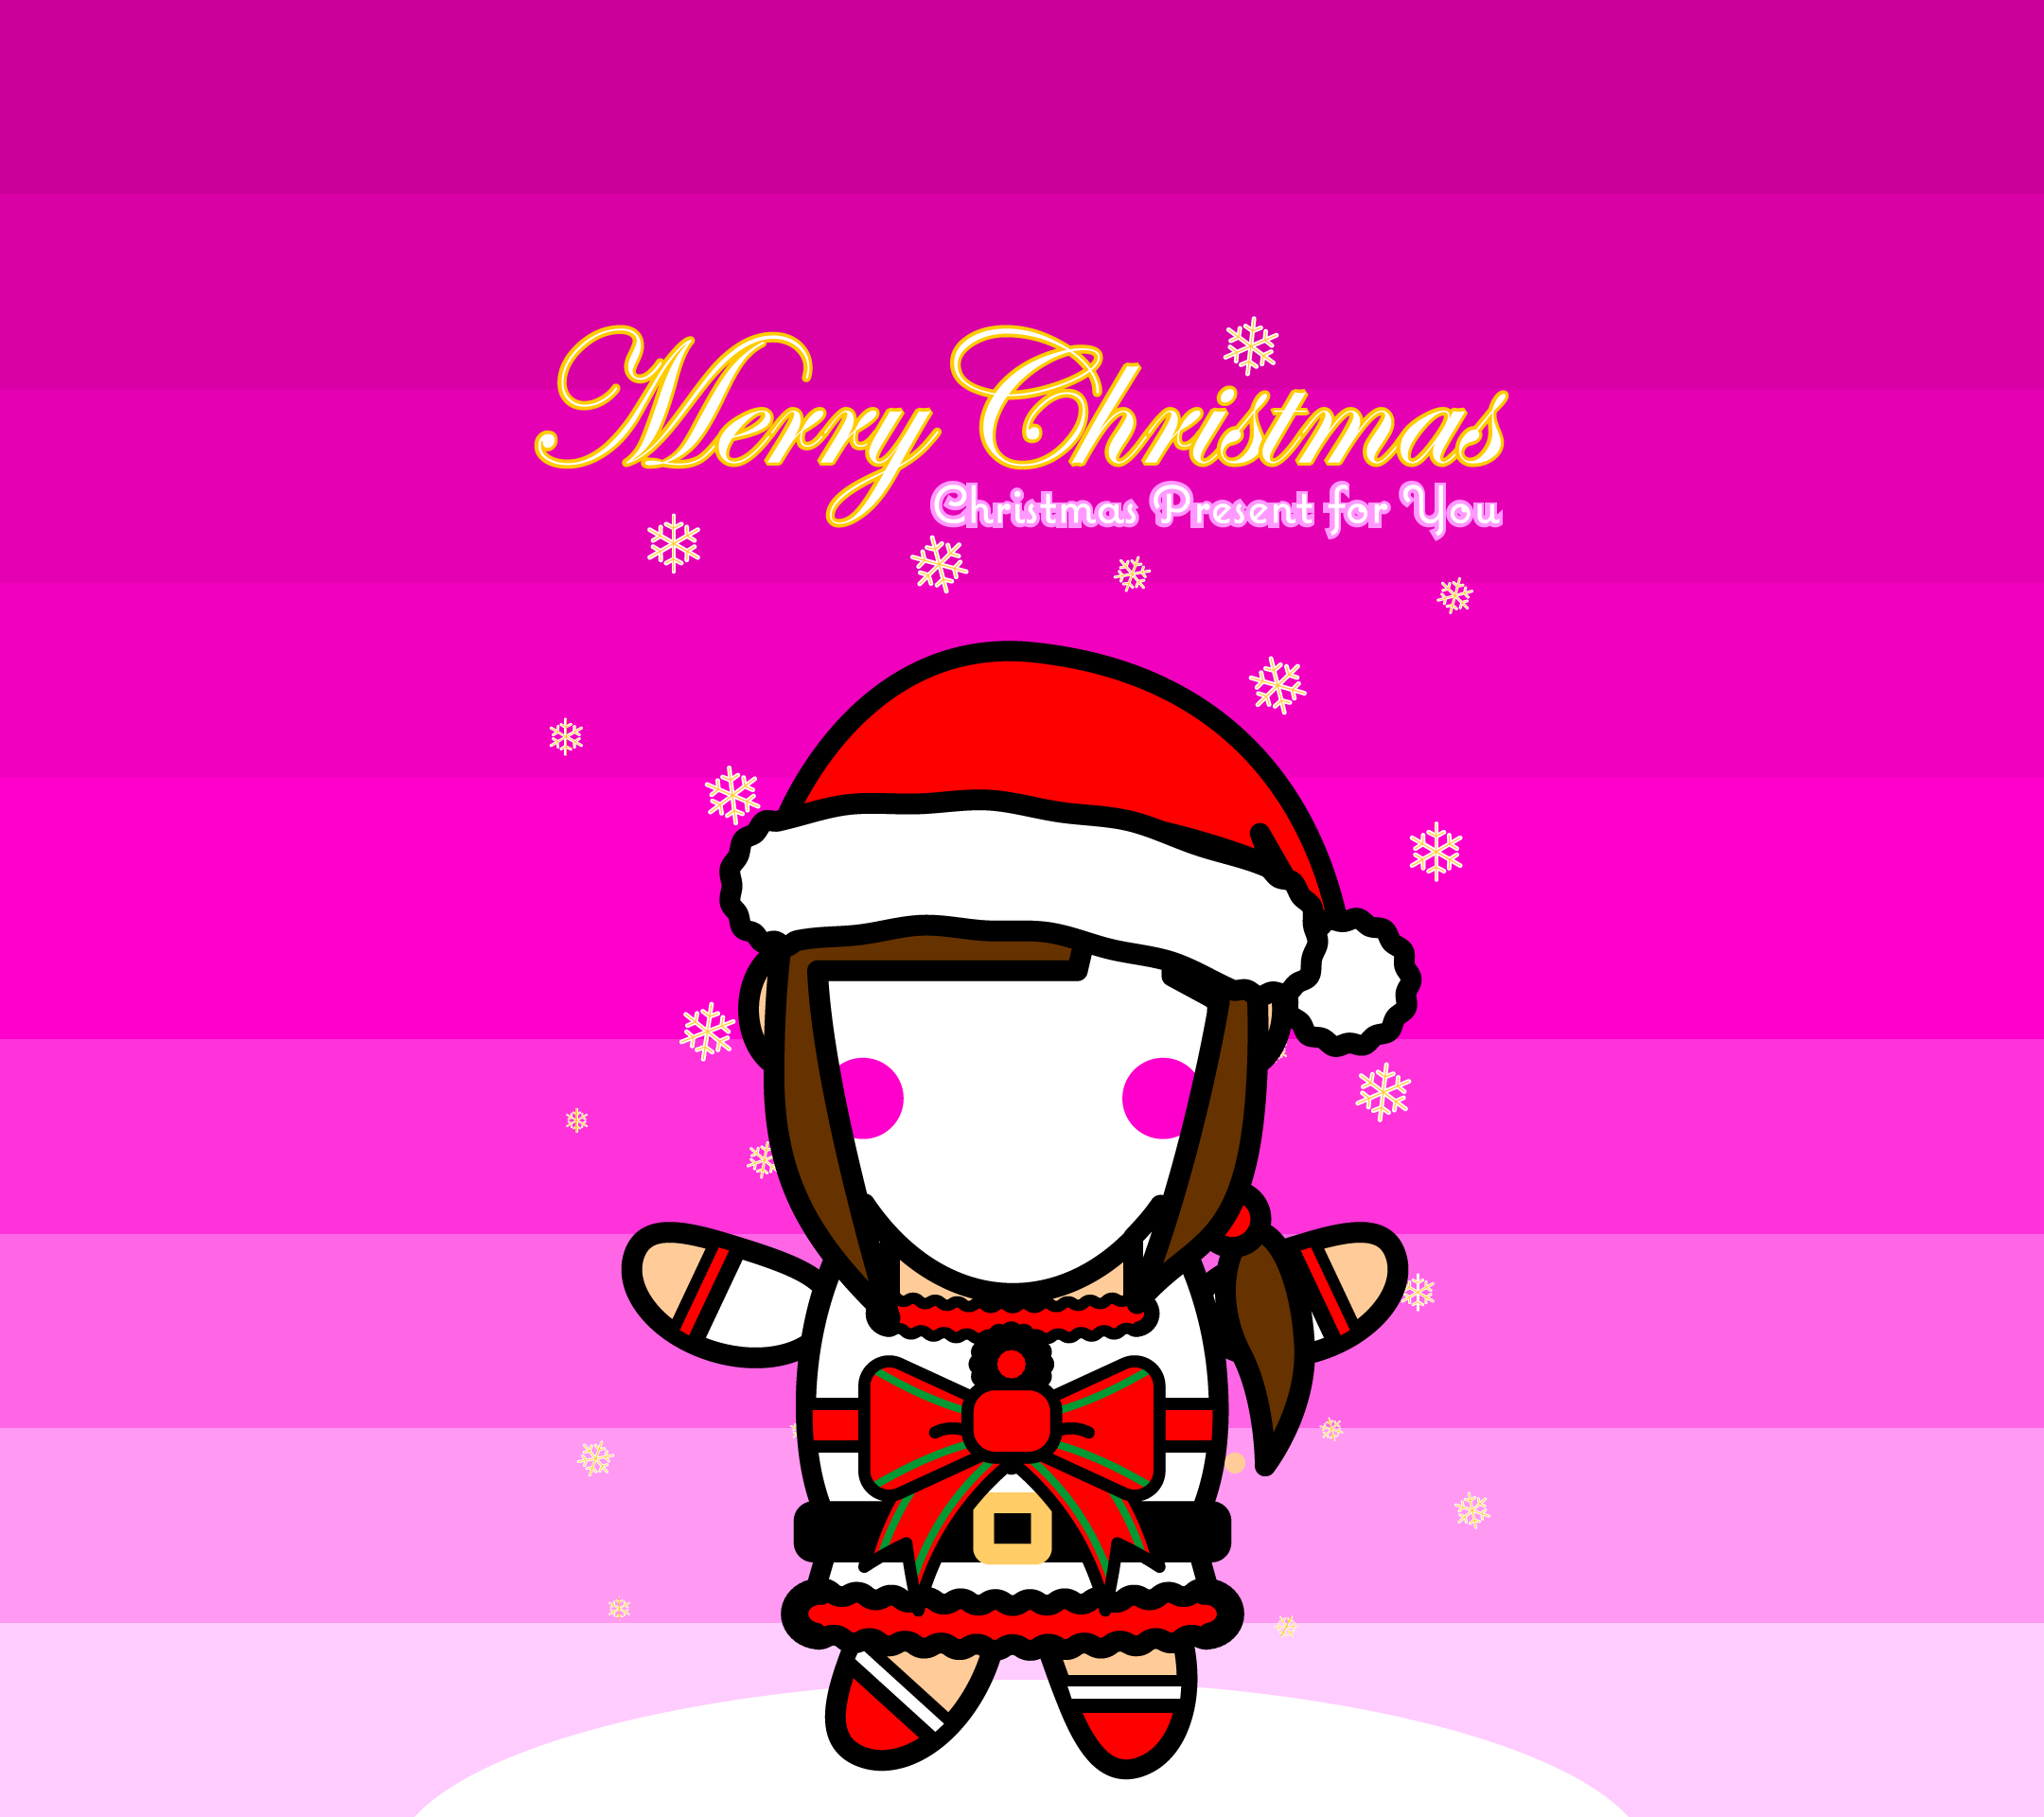 wallpaper6_christmas-santawoman02-pink-1-android